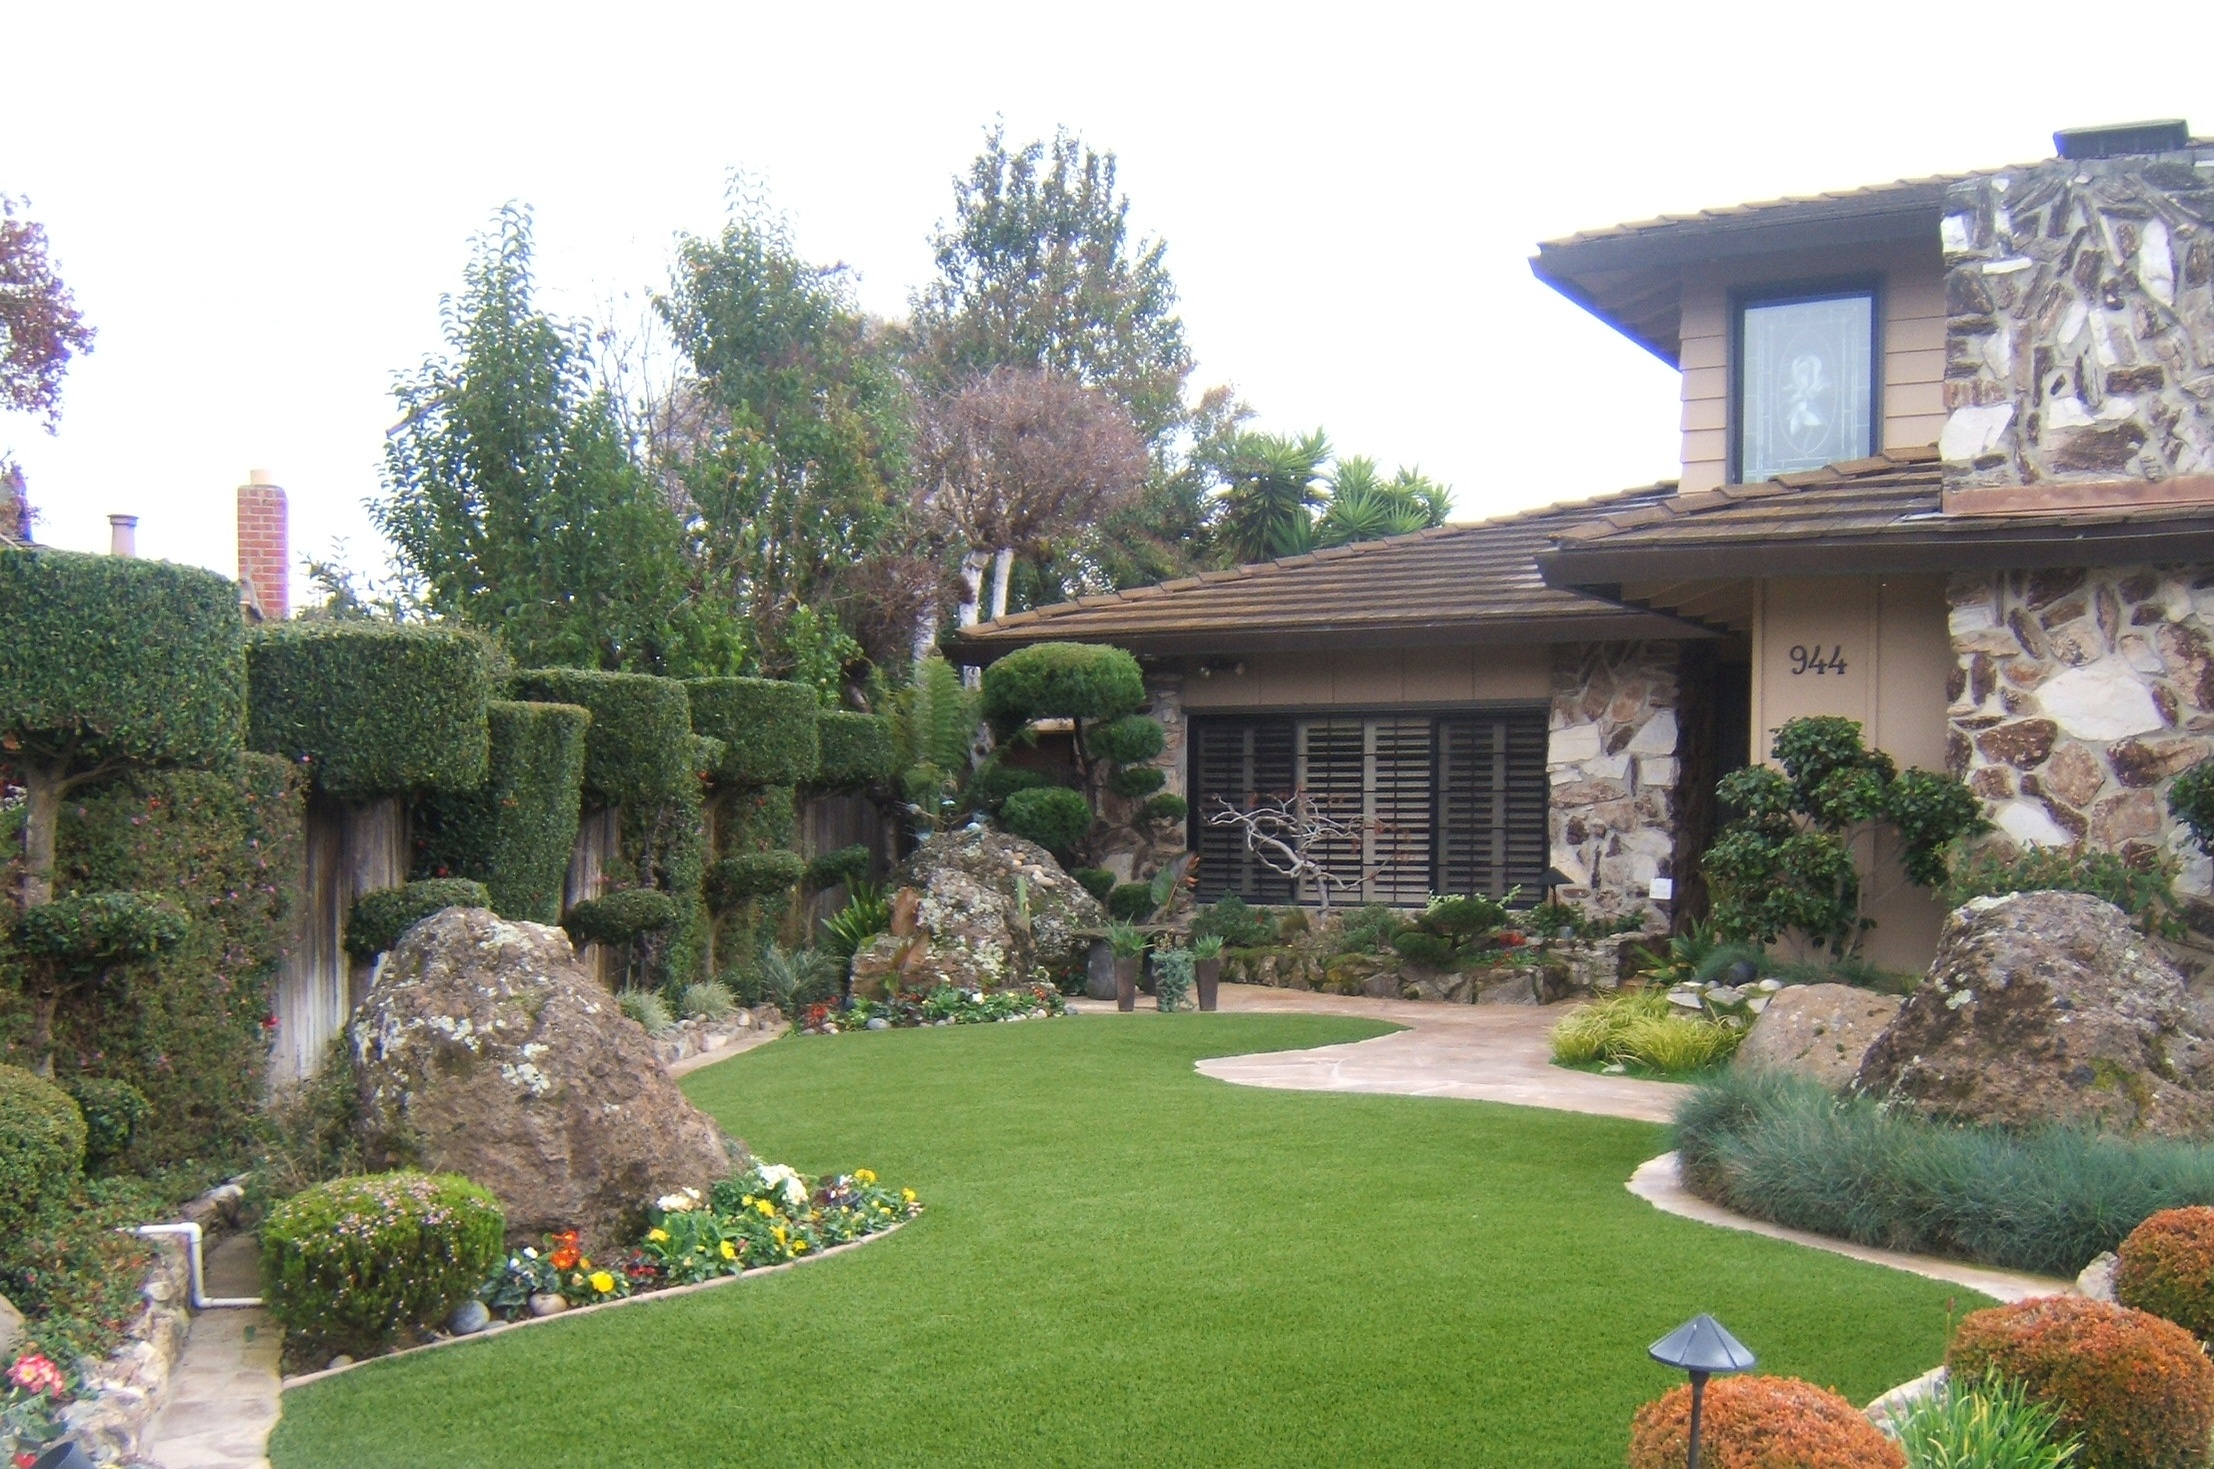 Artificial Turf aiding in a stress free summer!